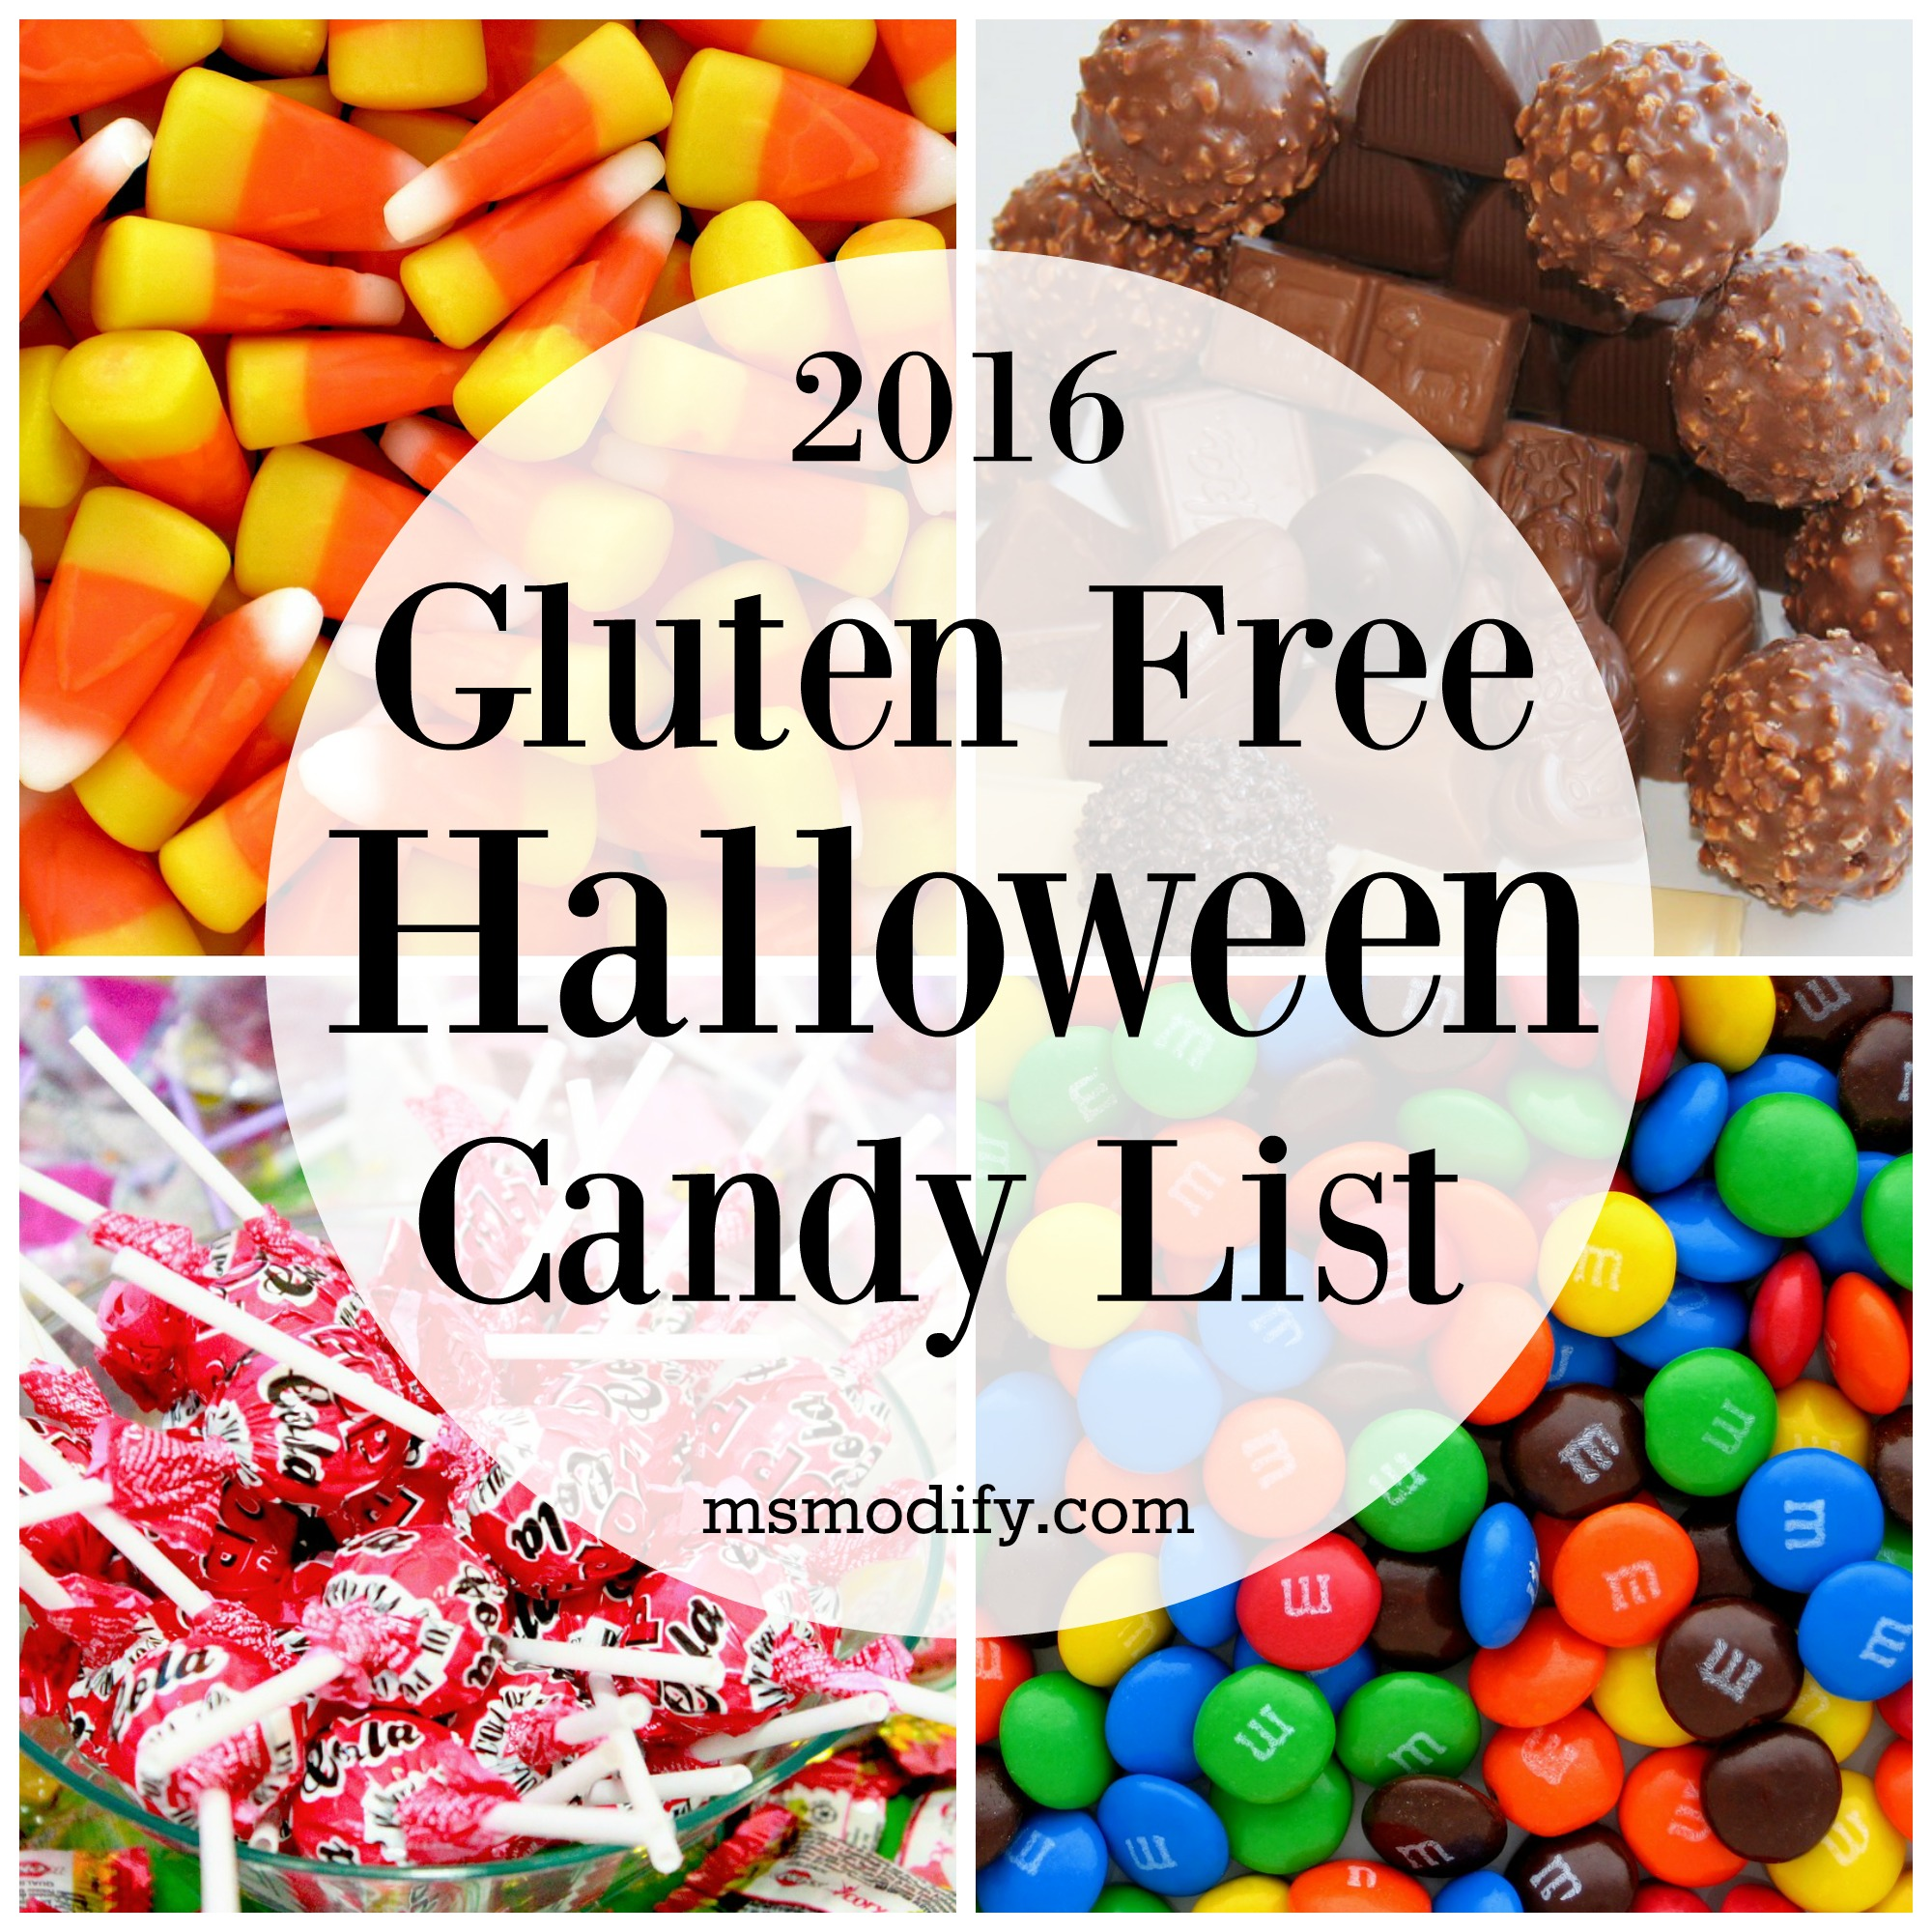 2016 gluten free halloween candy list msmodify - What Halloween Candy Is Gluten Free